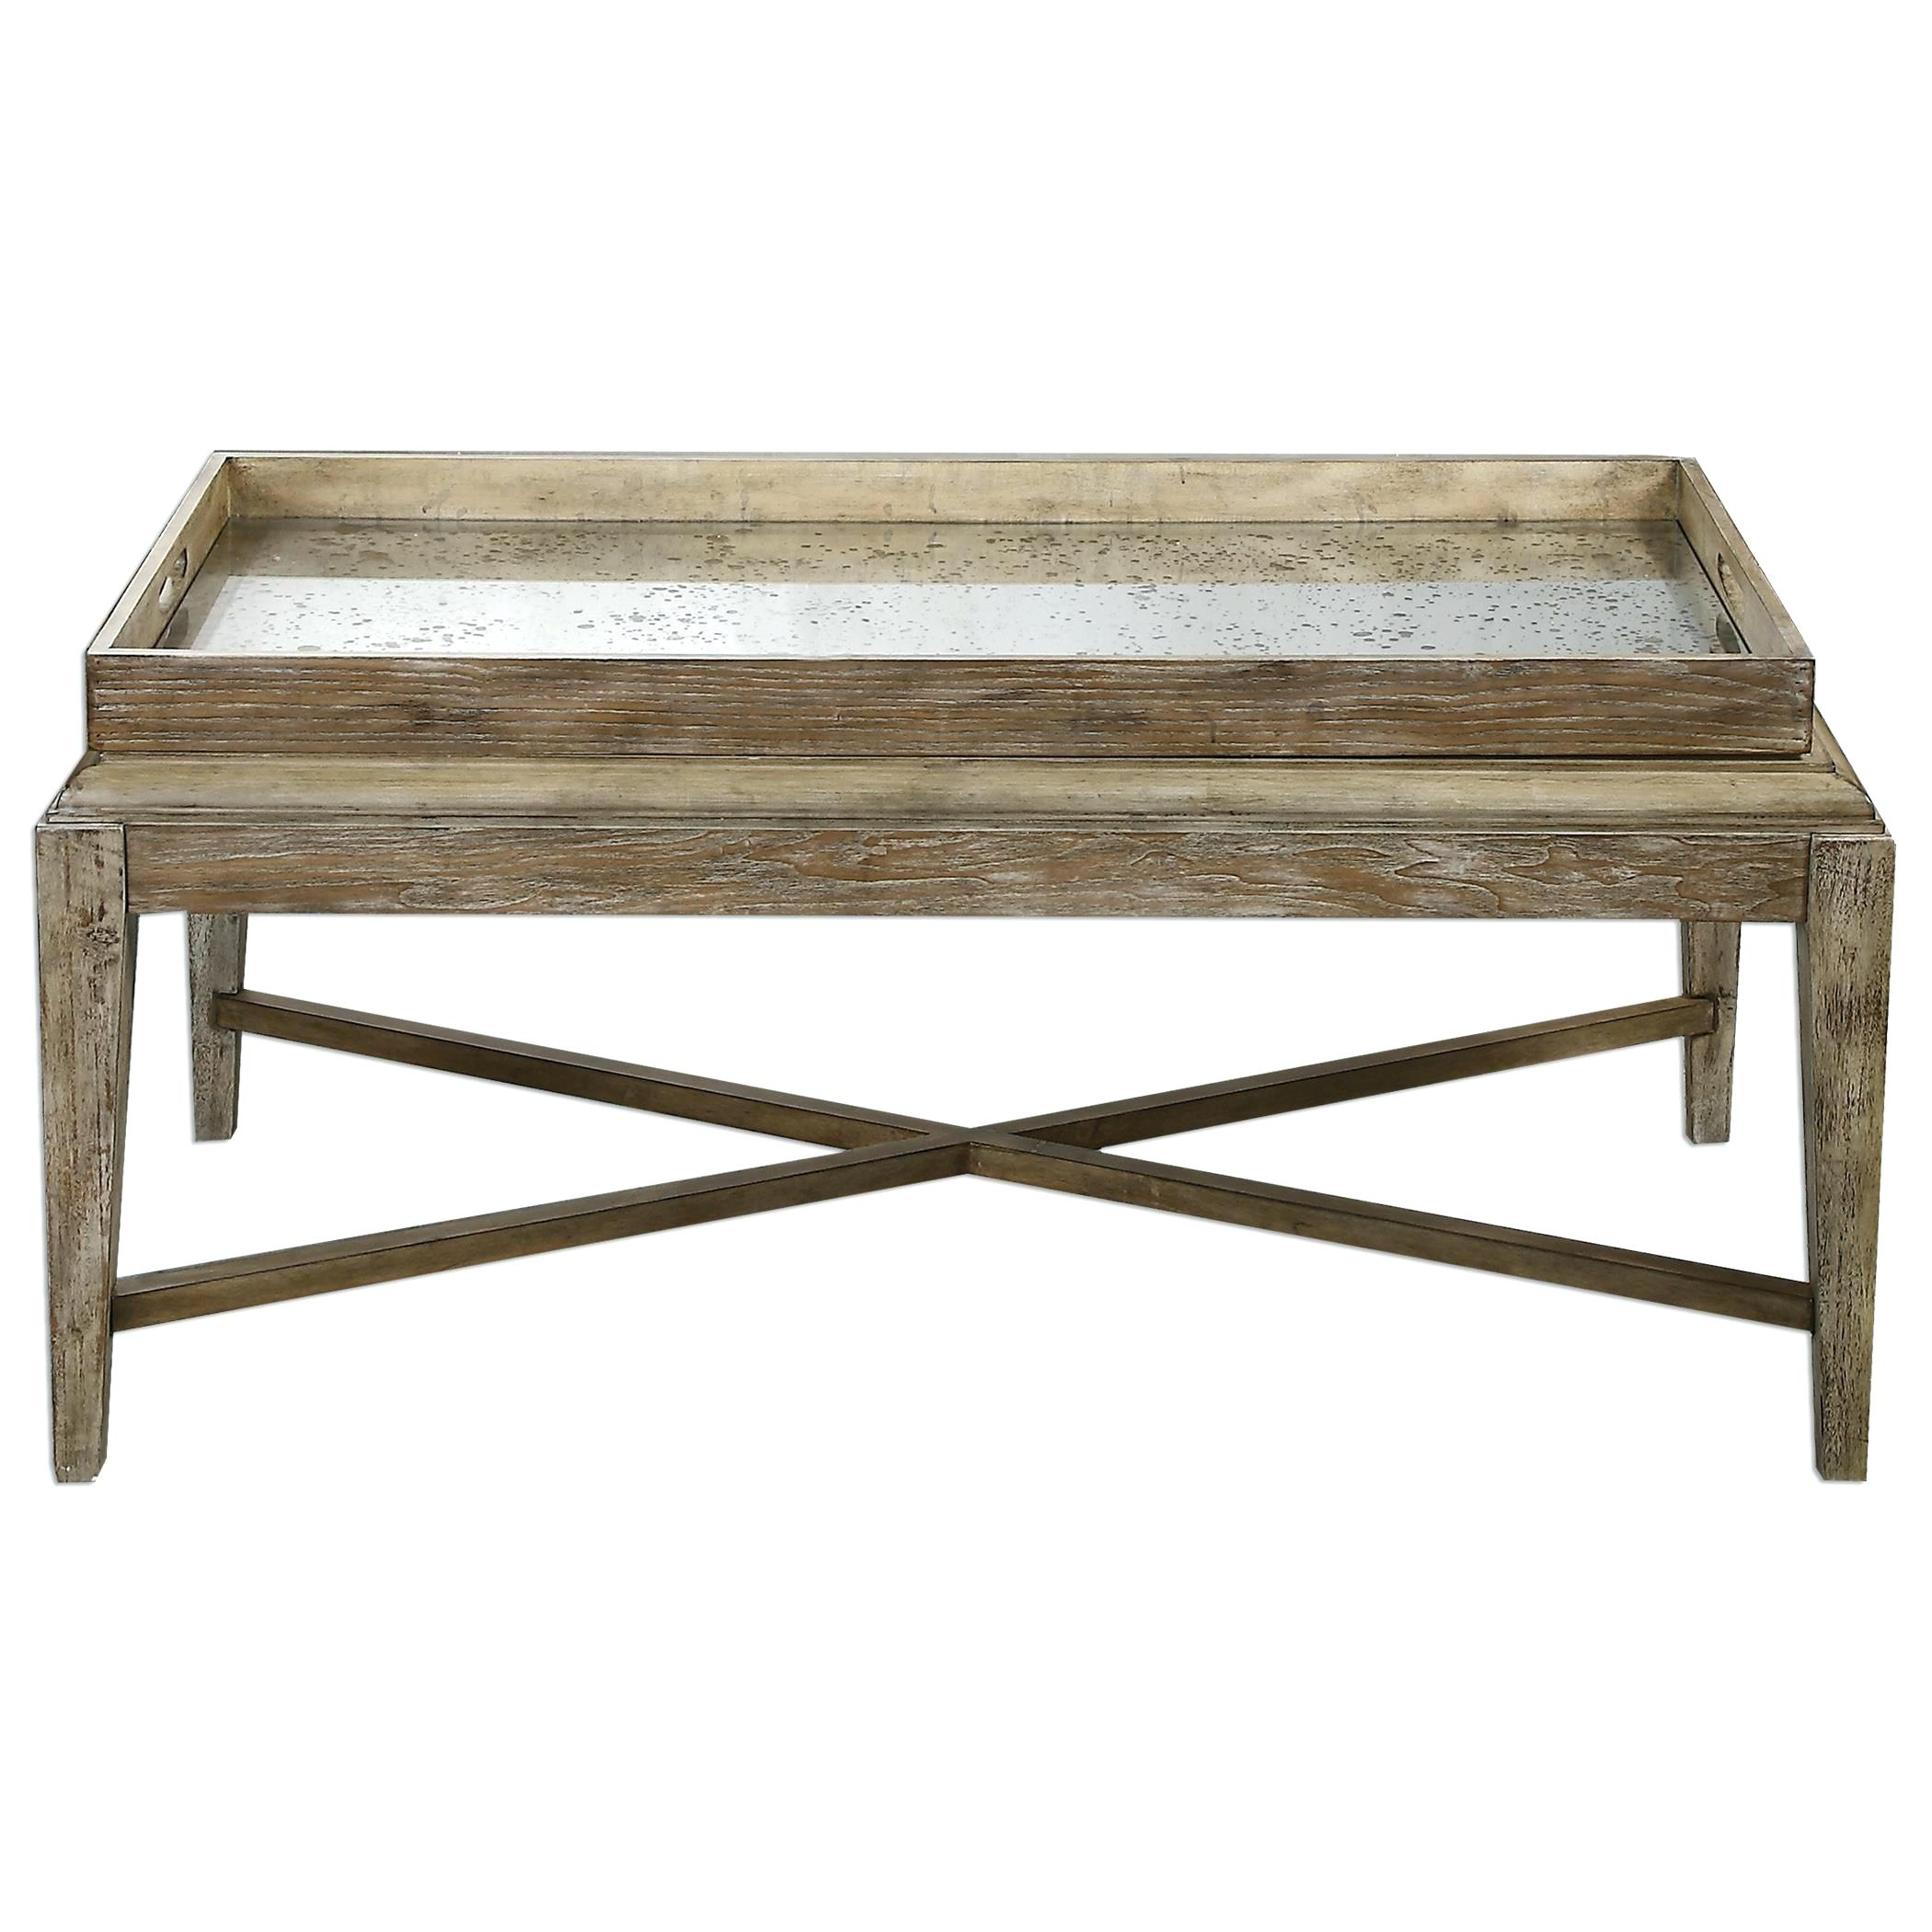 uttermost driftwood coffee table accent furniture wooden tables for large sectionals warm dining set square plans acrylic waterfall console tall patio chairs three piece indoor